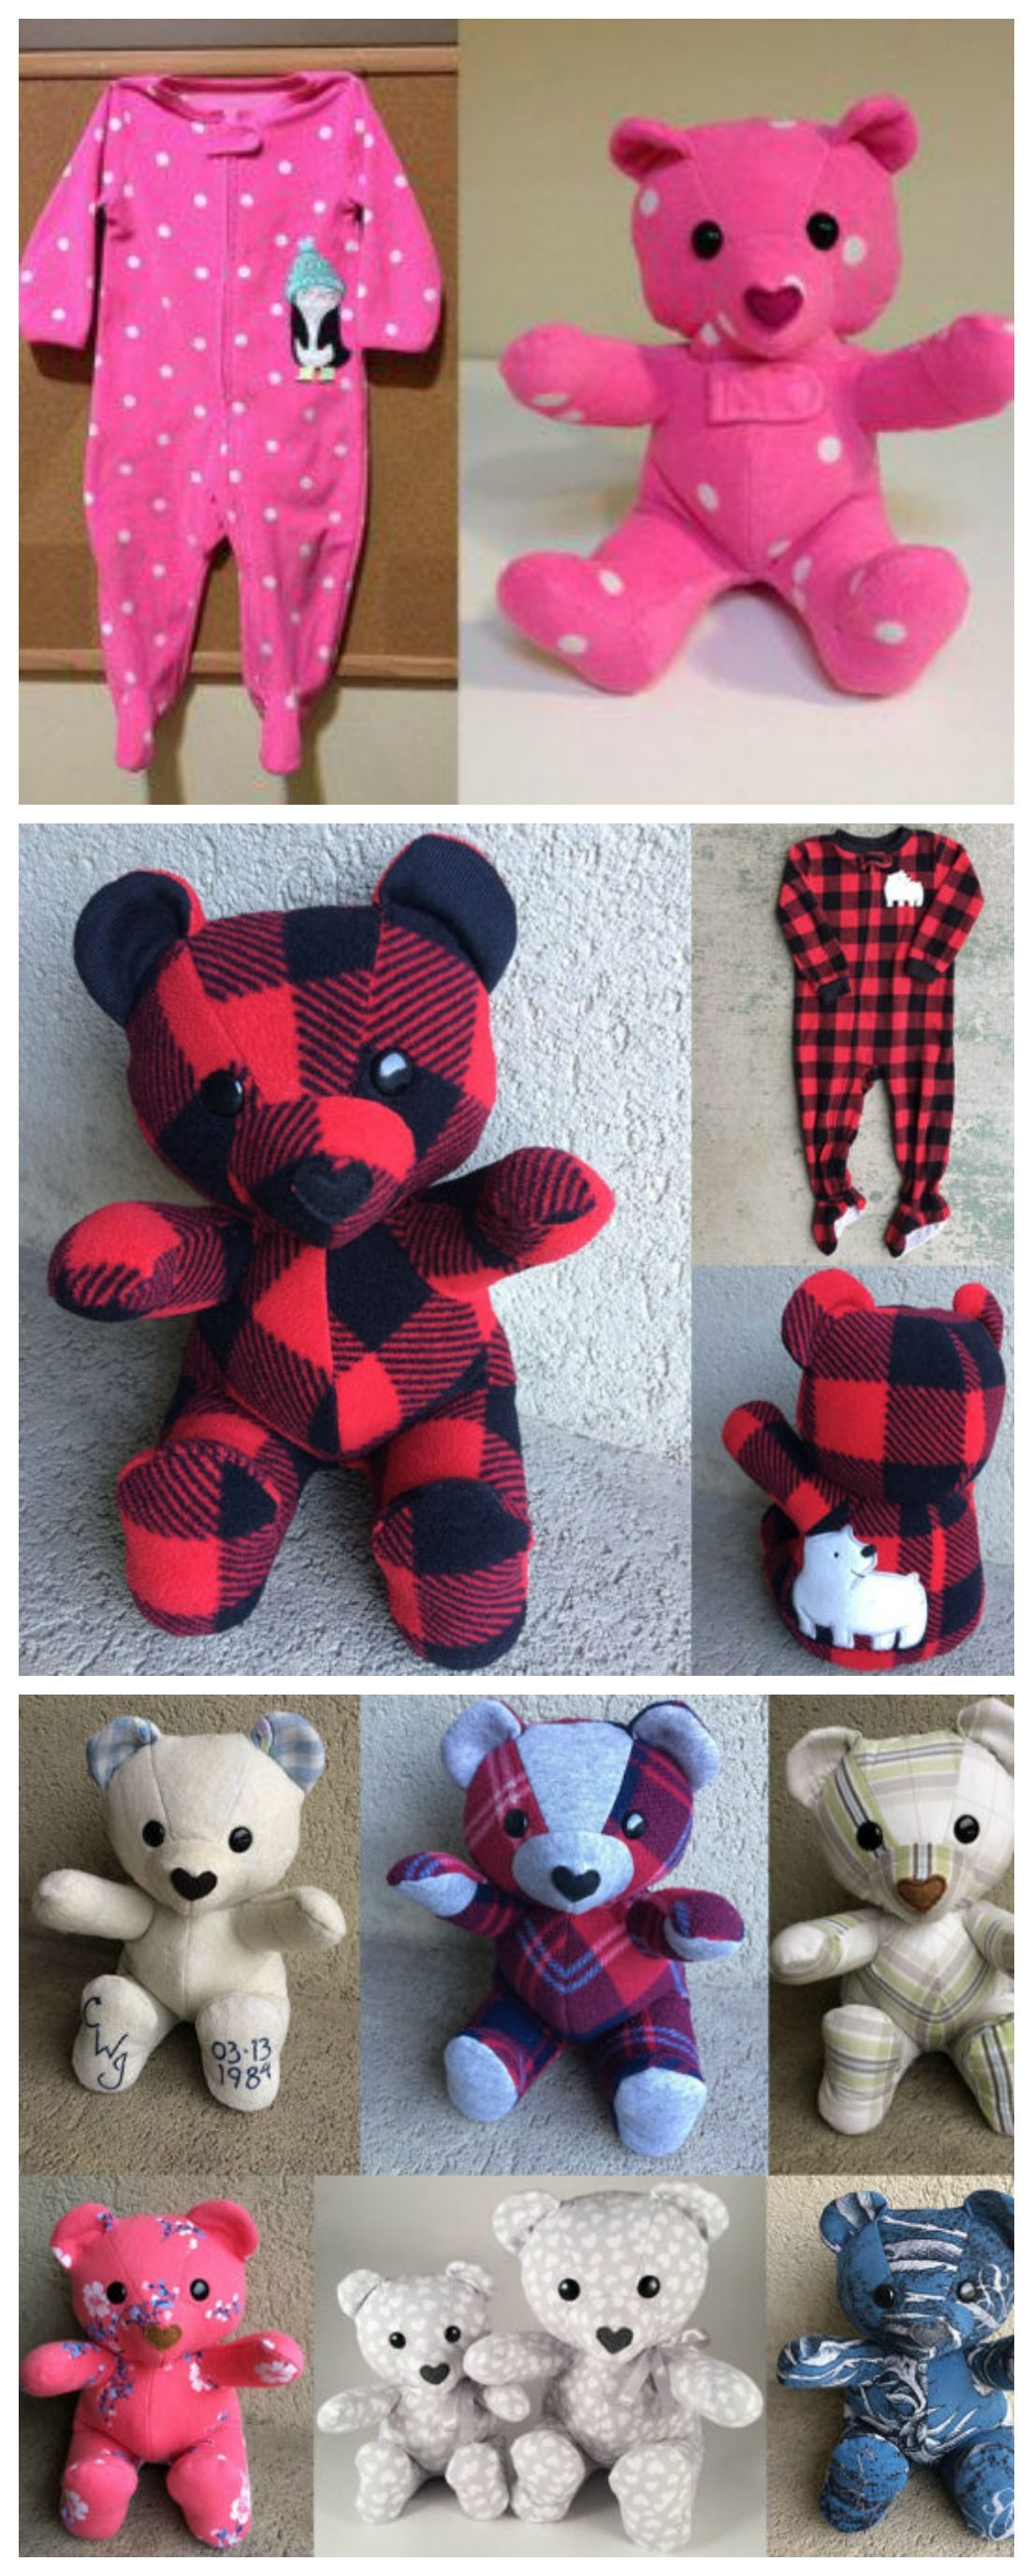 20 Brilliant Craft Projects To Make And Sell Babies Clothes Teddy